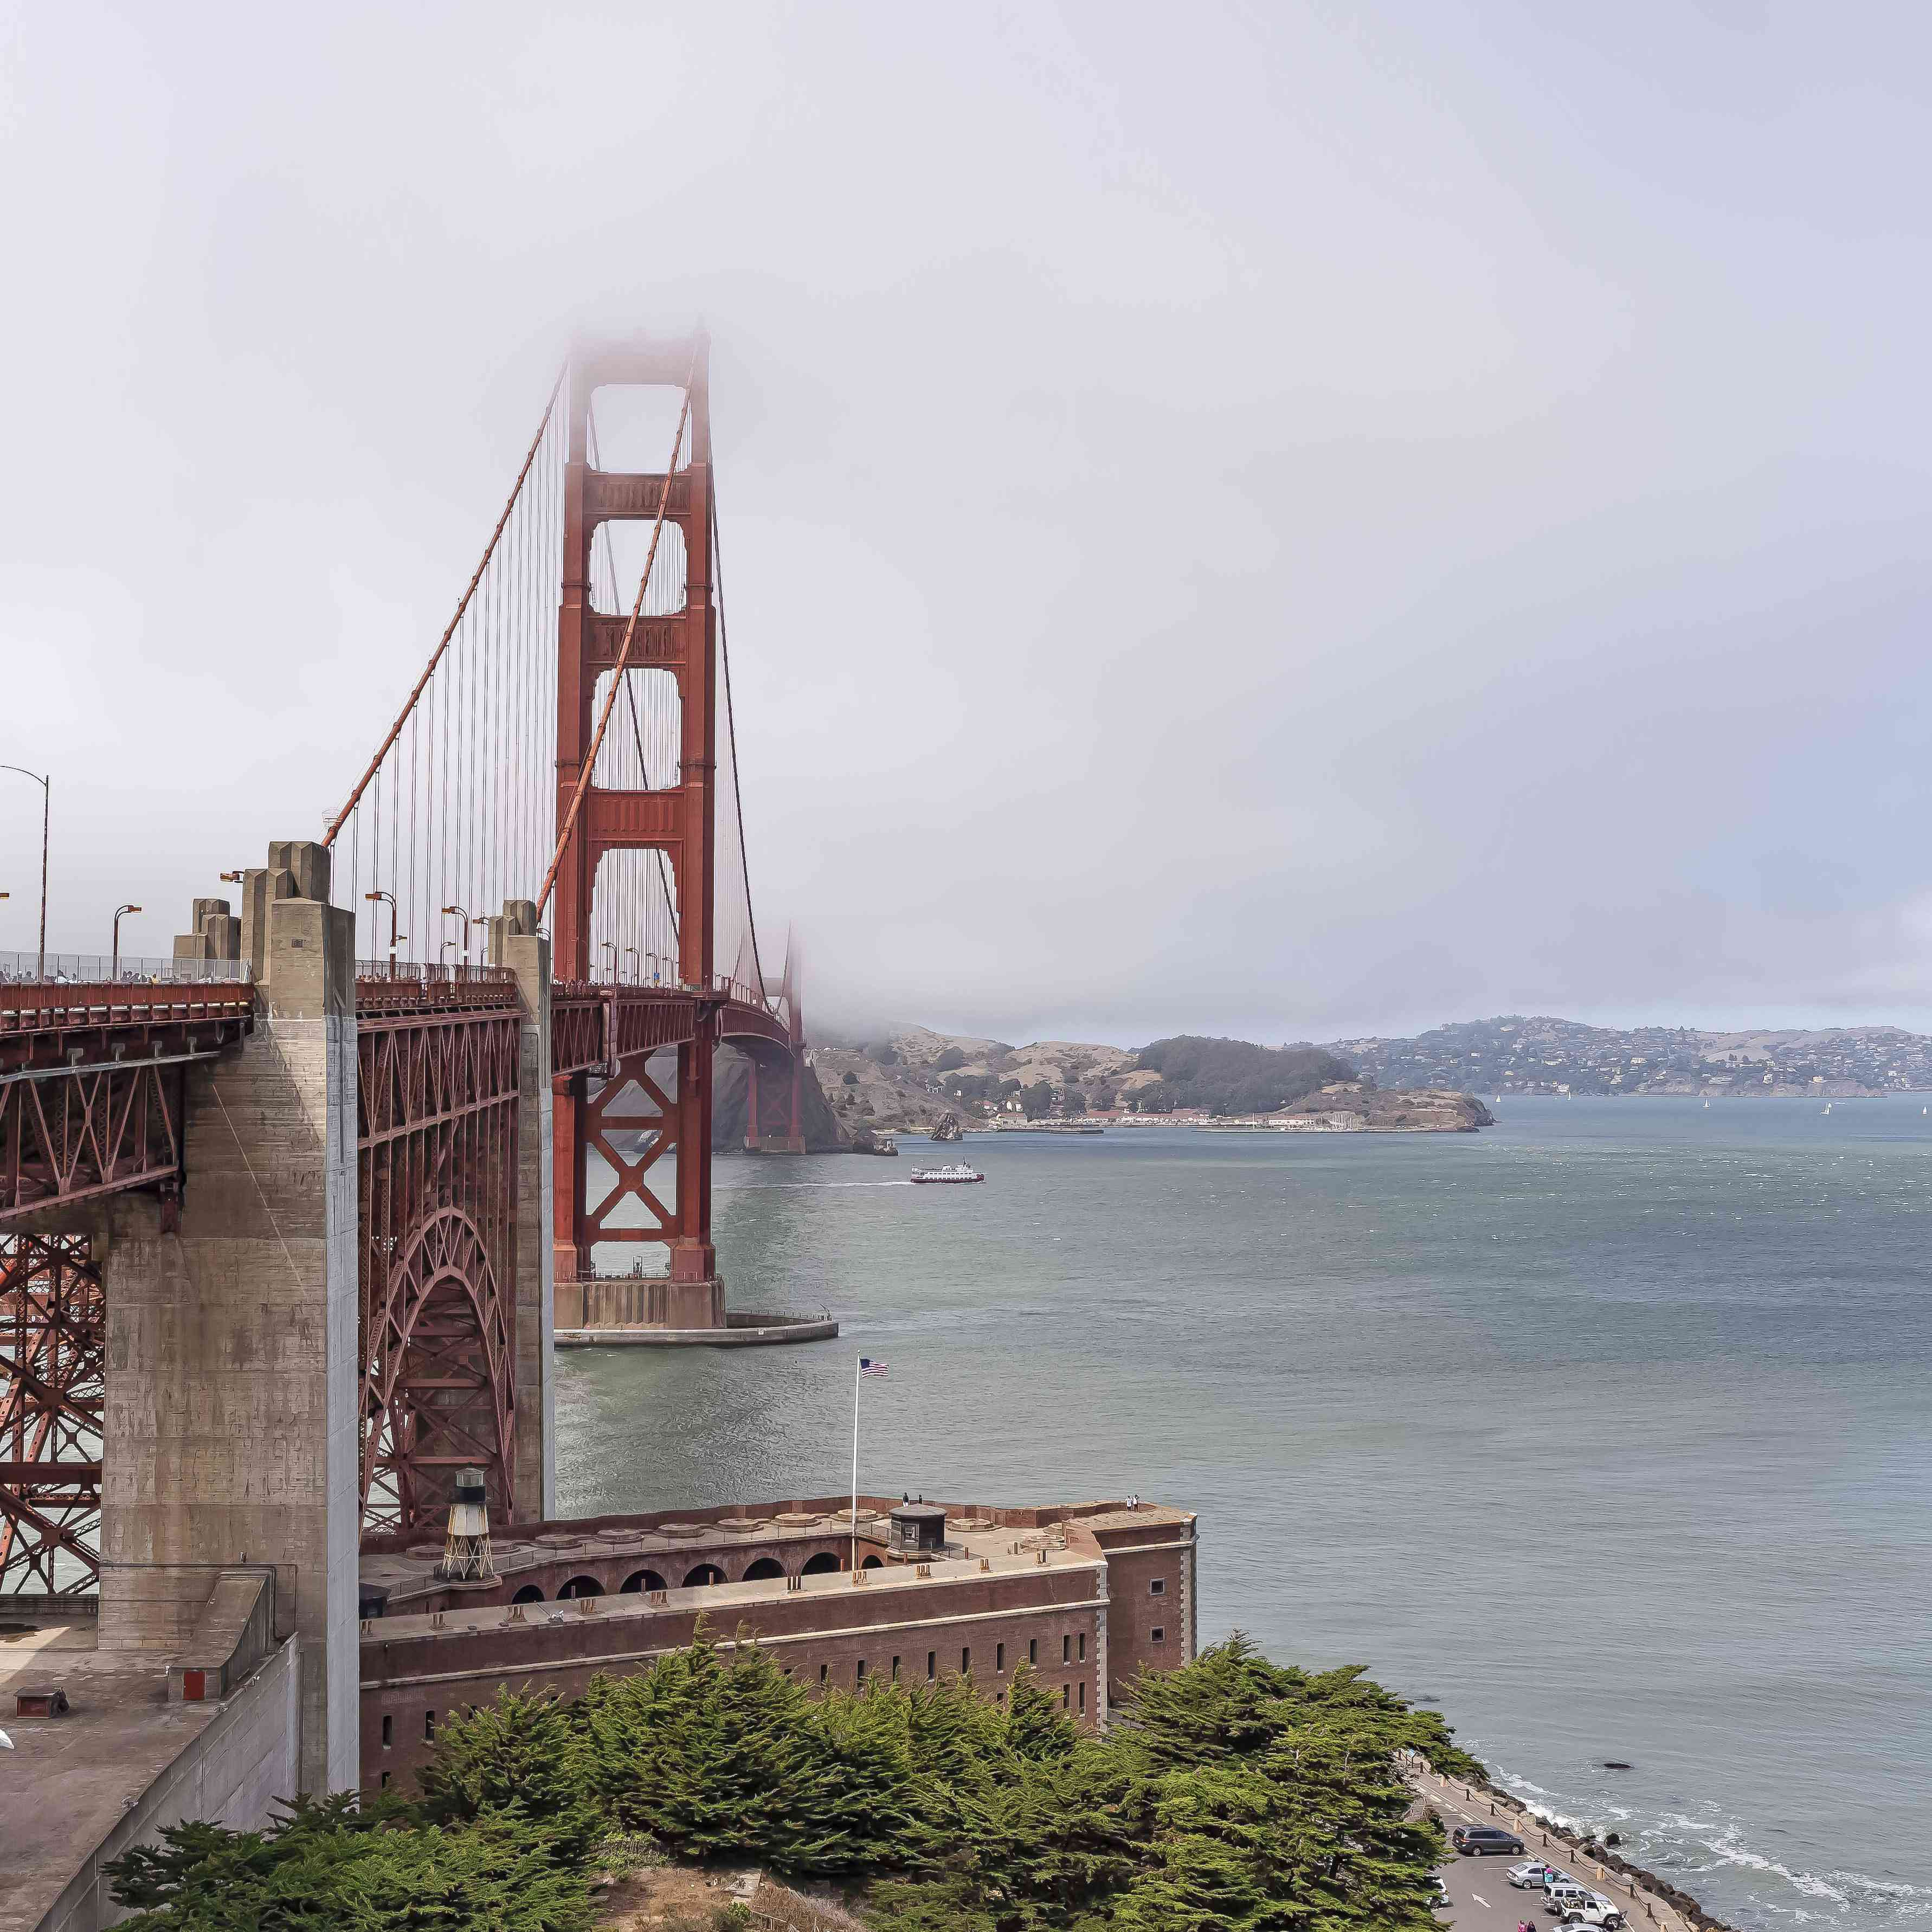 San popular francisco in places 14 Best